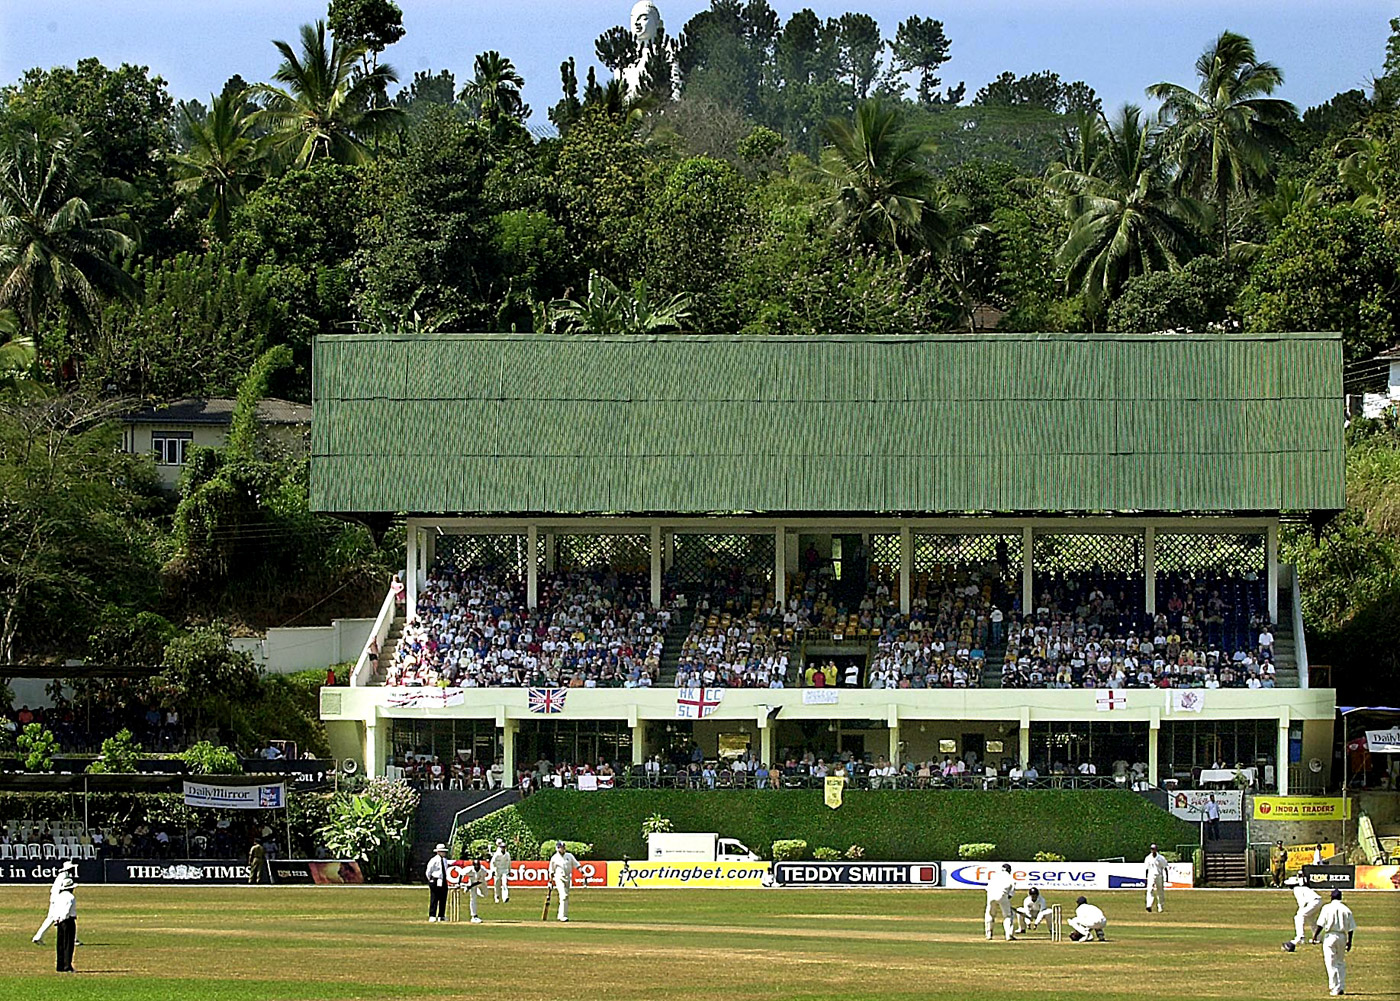 England supporters watch the match in Kandy